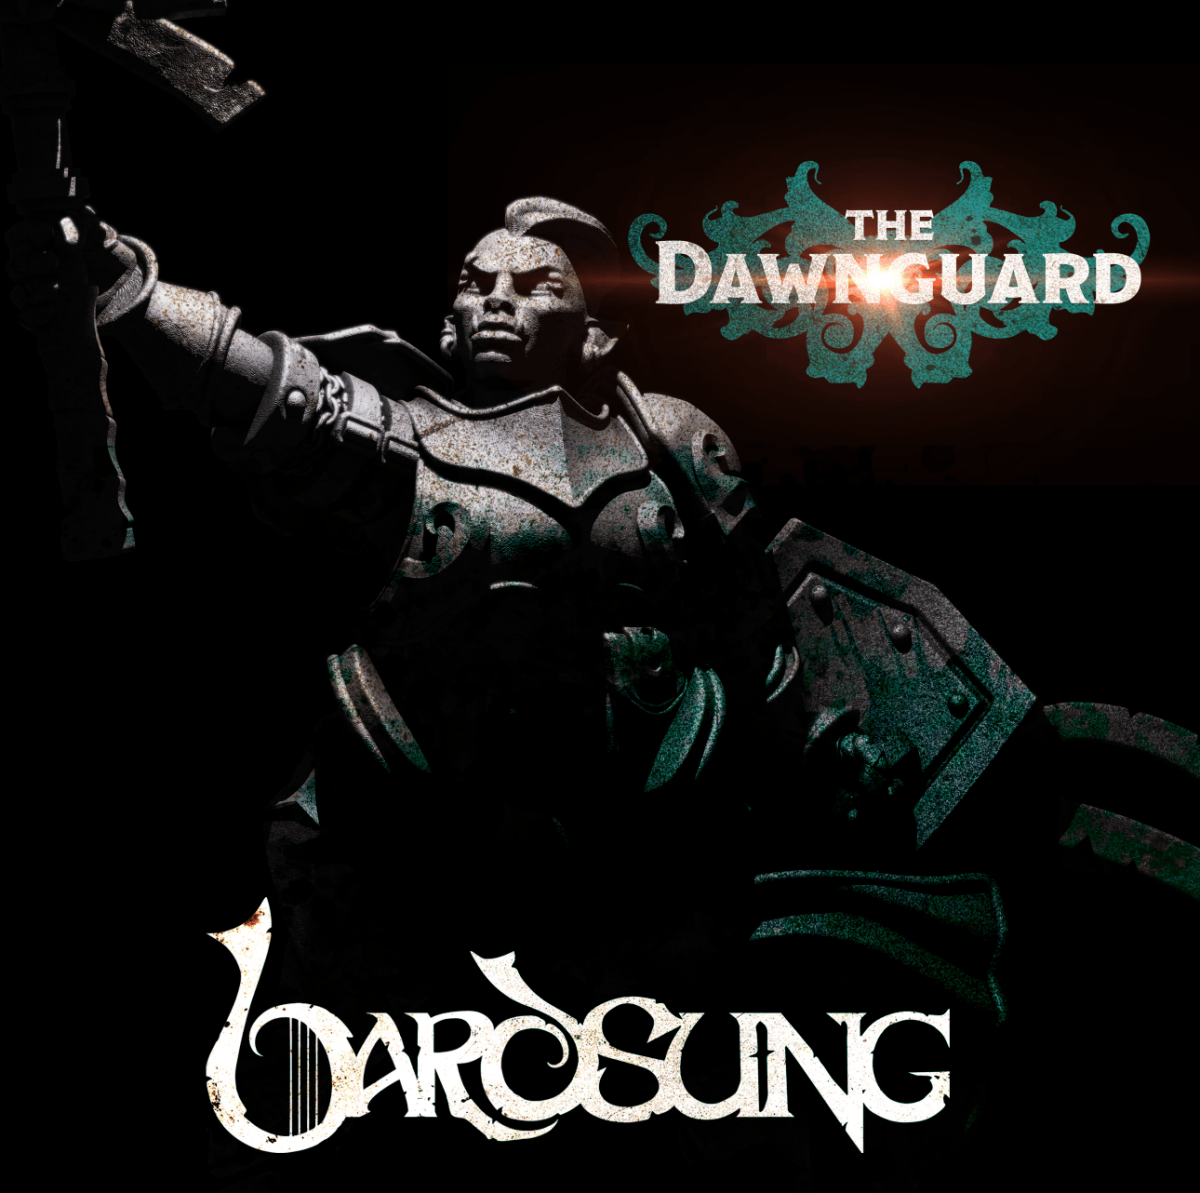 Bardsung-The-Dawnguard-Square